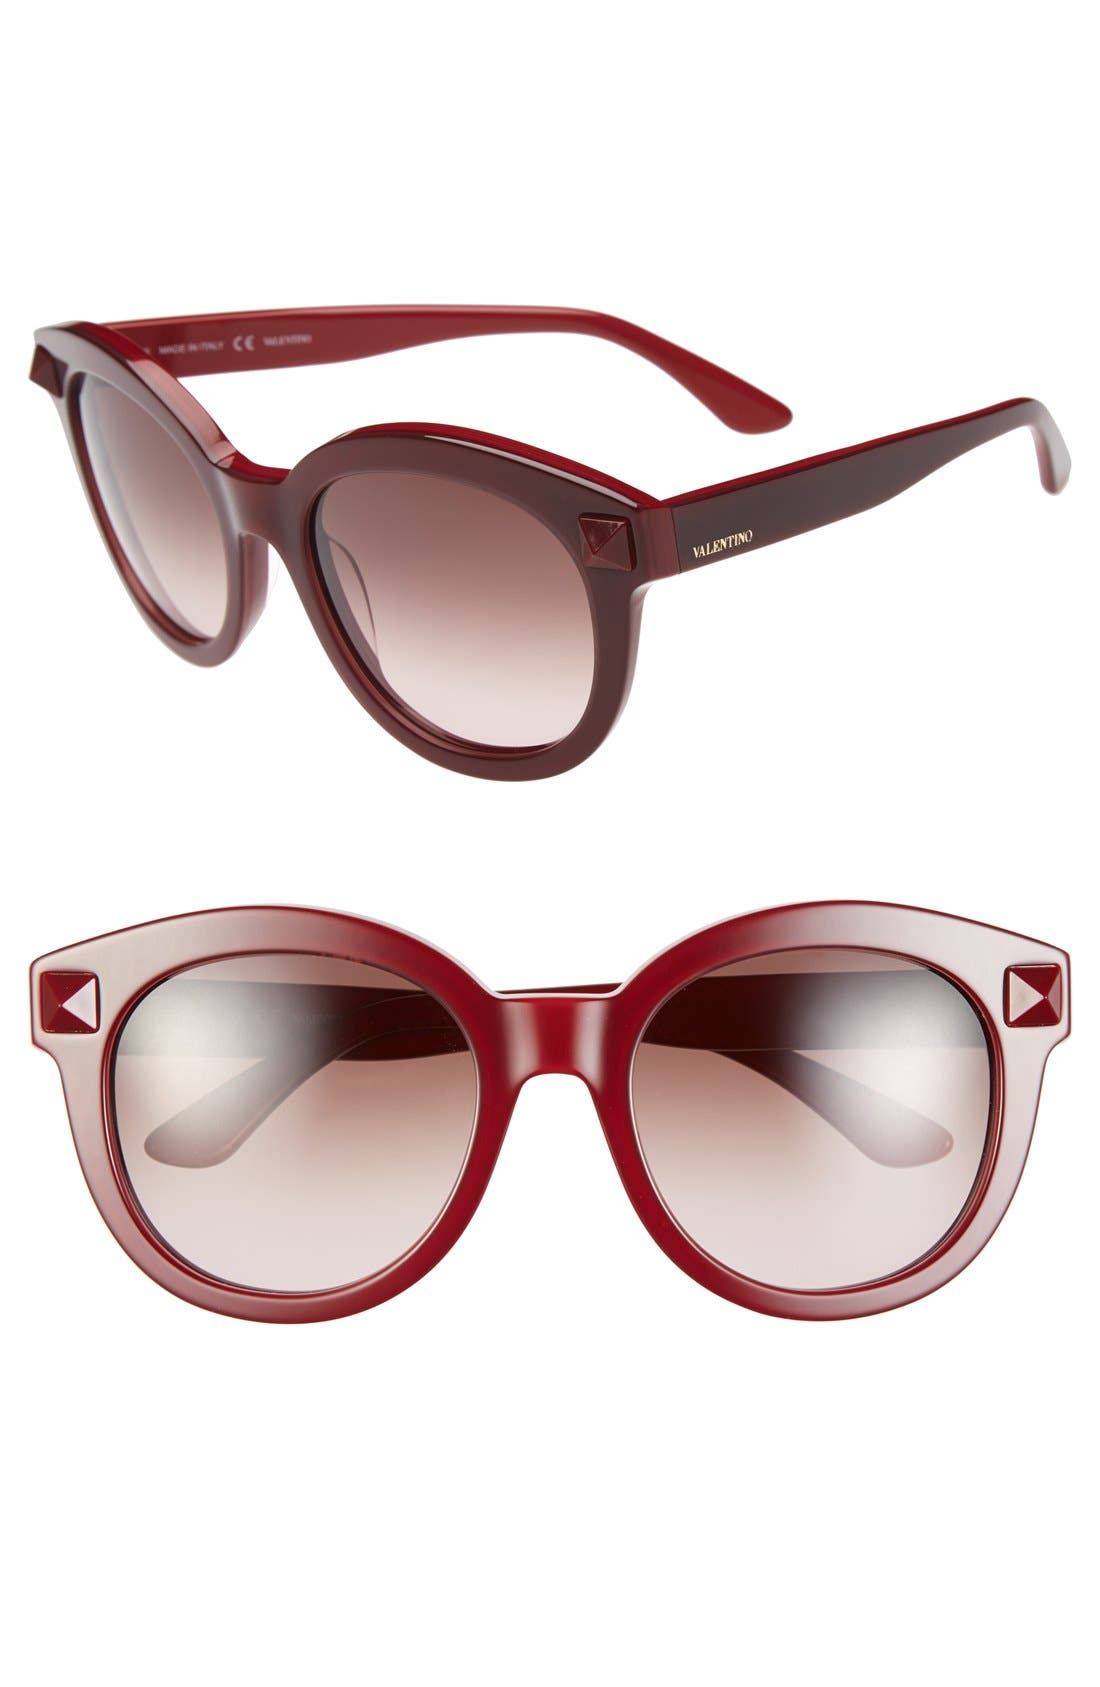 Alternate Image 1 Selected - Valentino 'Rockstud' 54mm Semi Oval Cat Eye Sunglasses